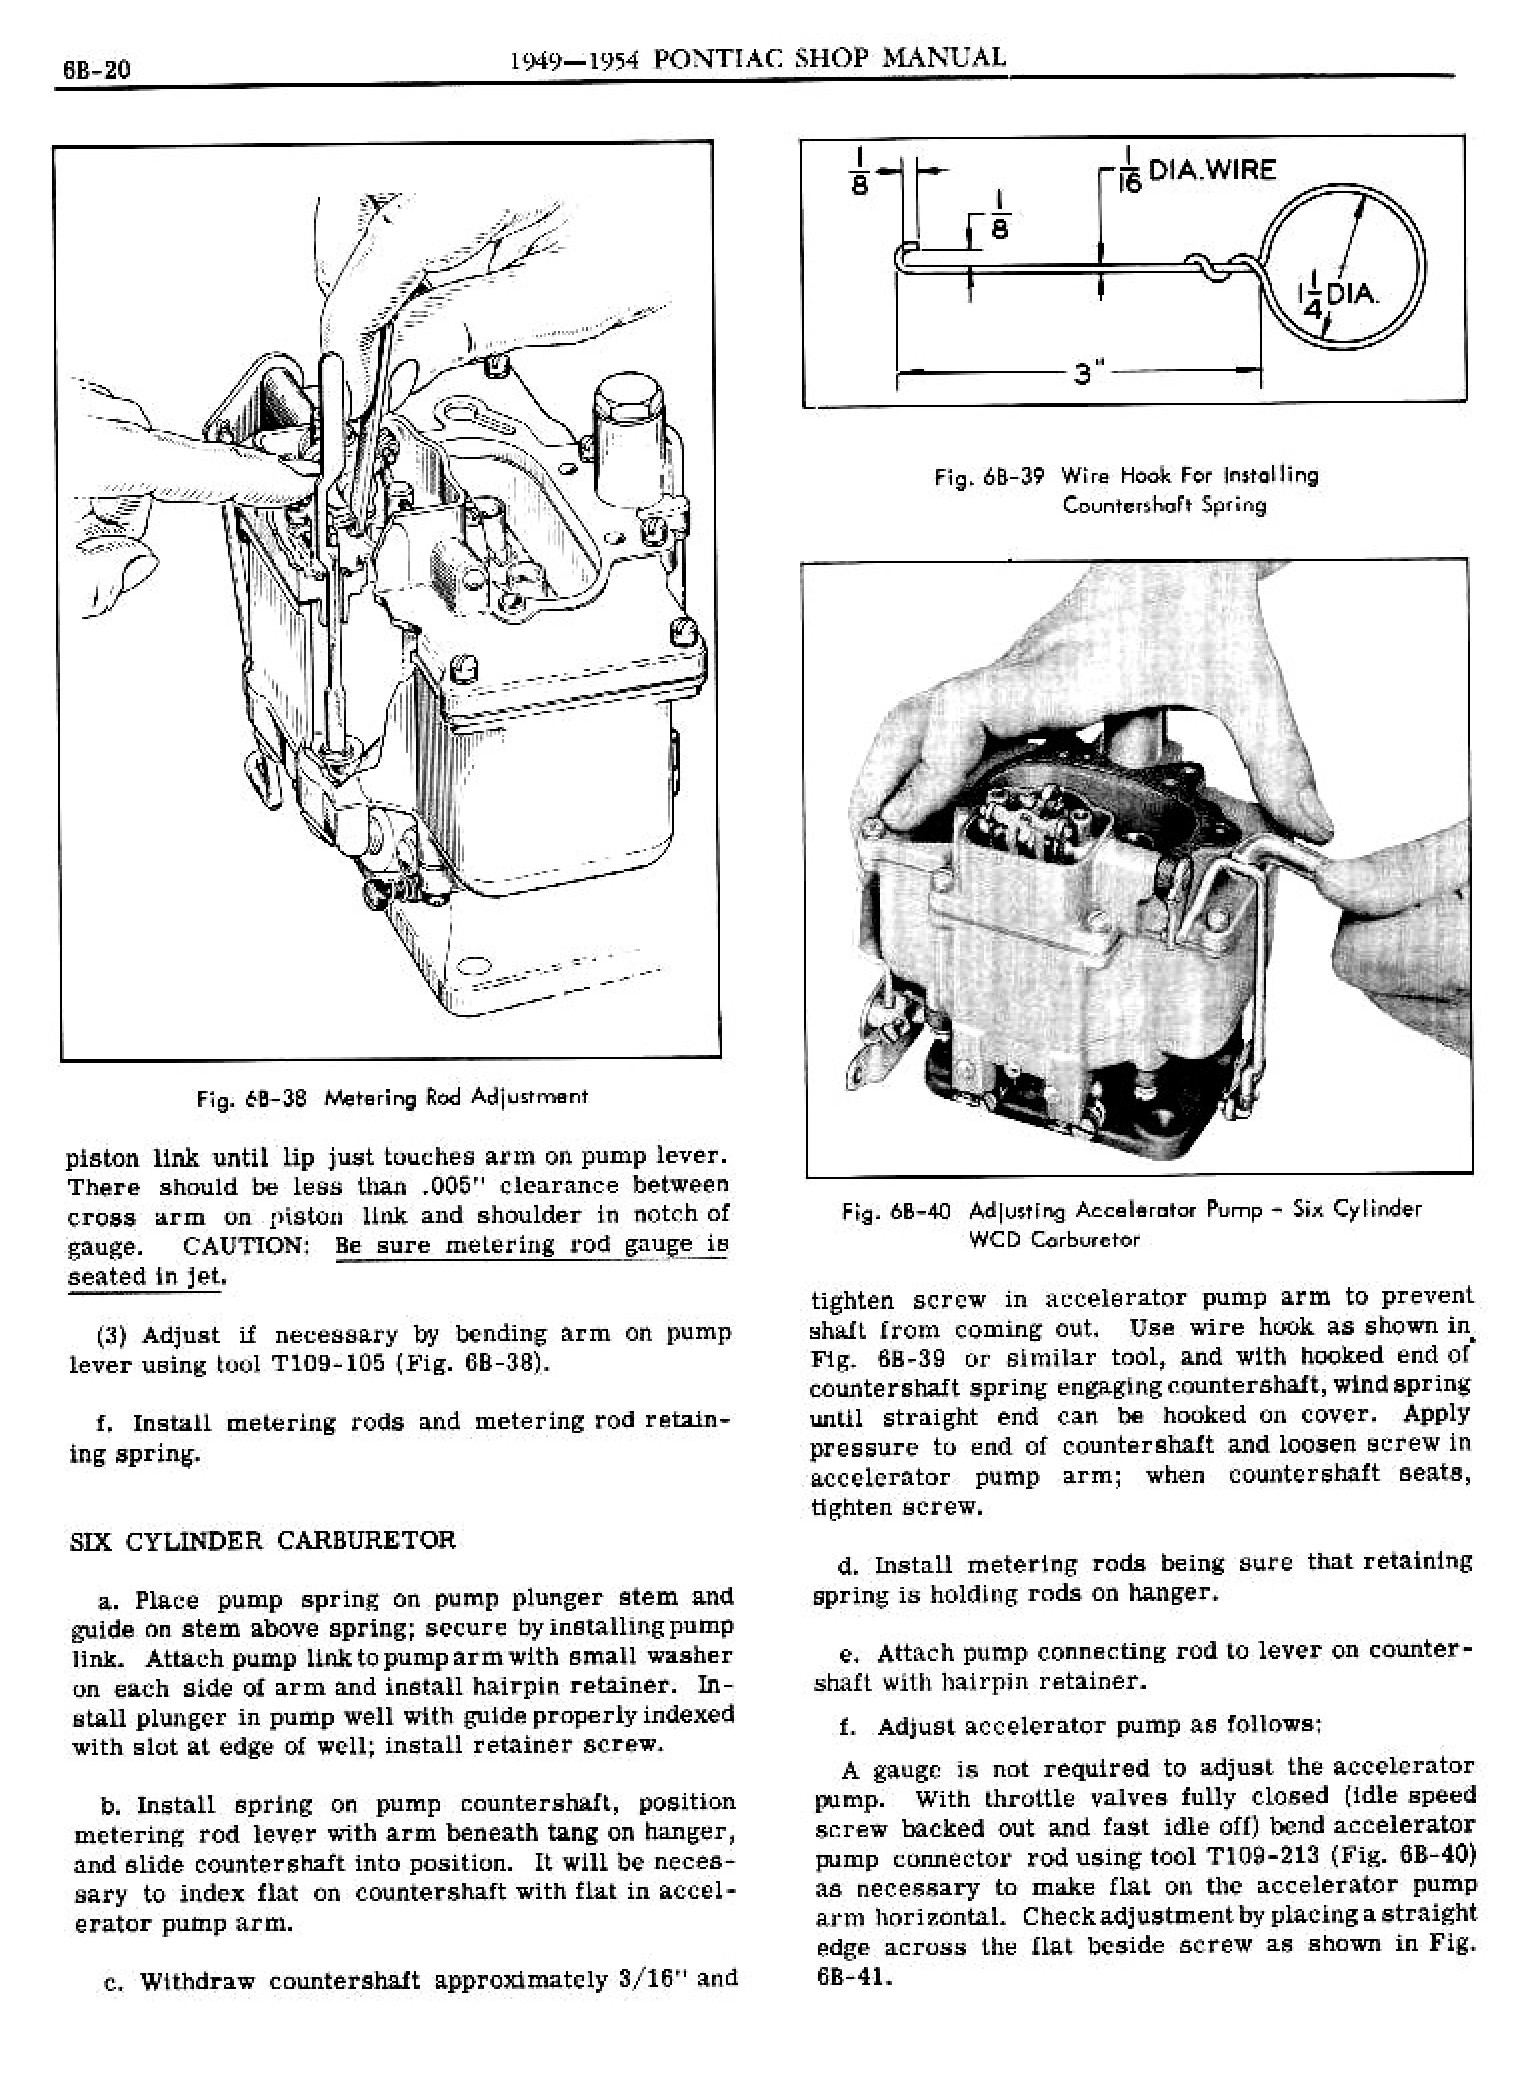 1949 Pontiac Shop Manual- Engine Fuel Page 20 of 42